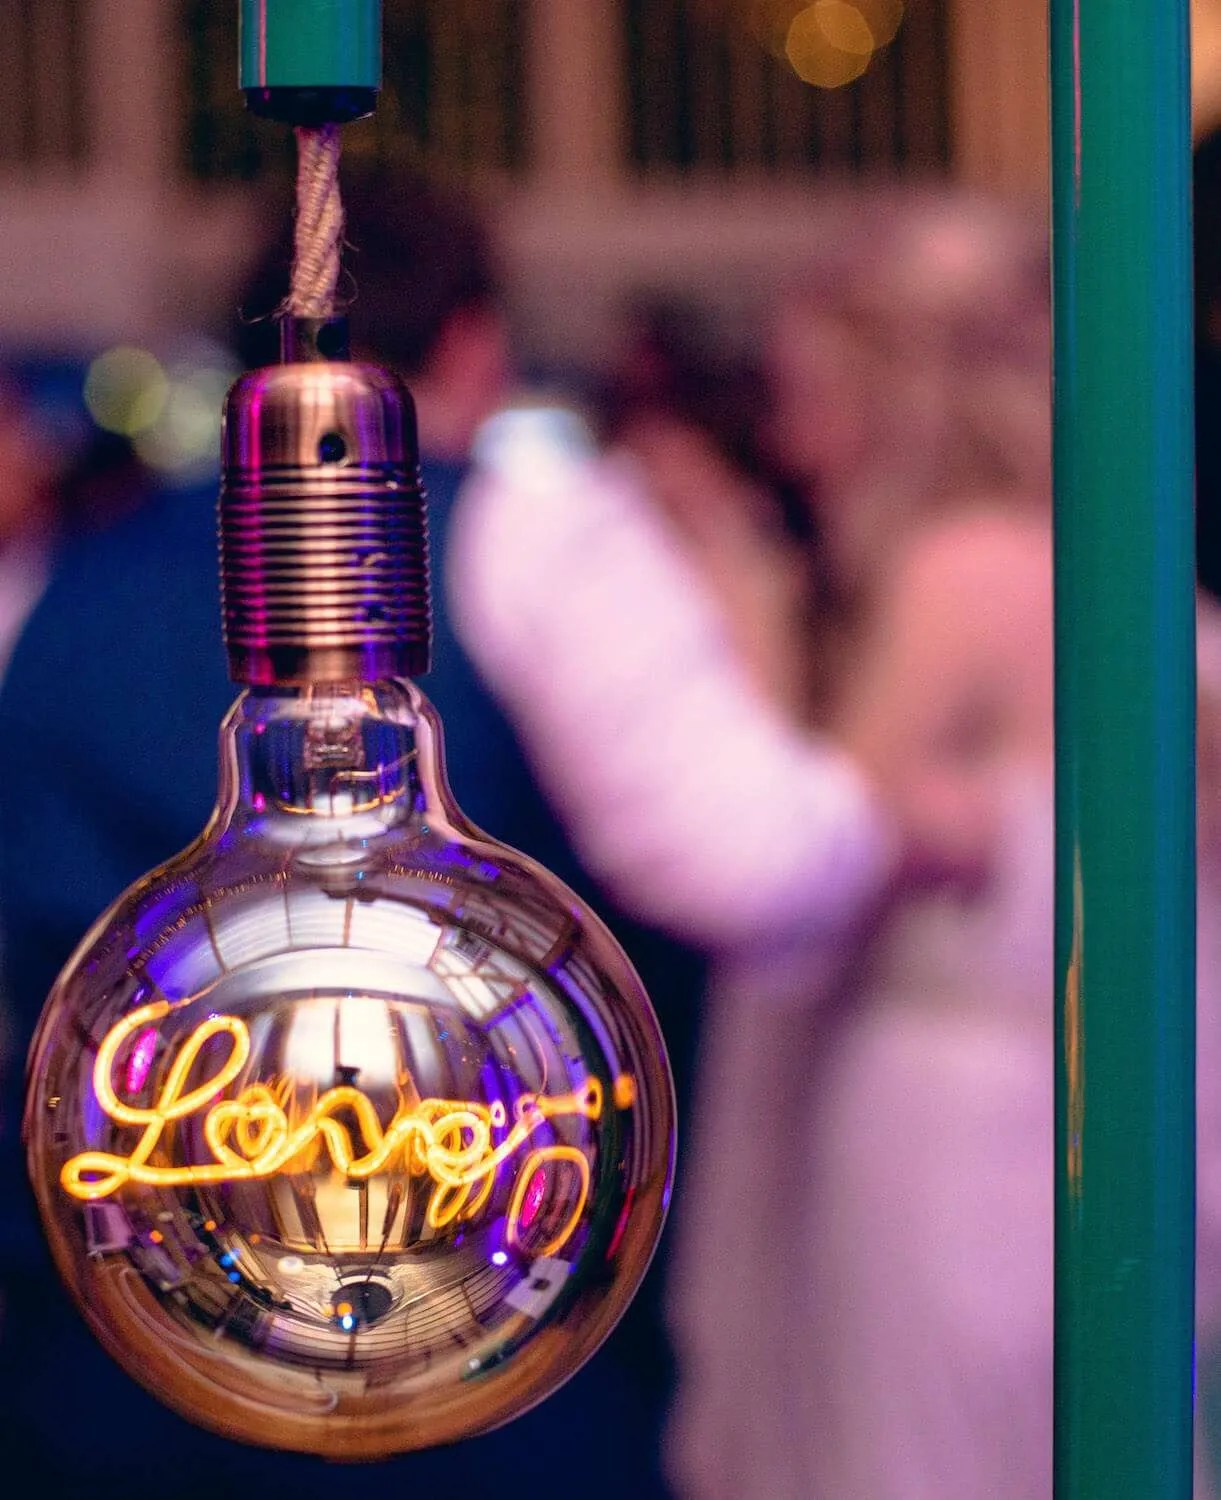 Rustic dj booth with love heart lightbulb